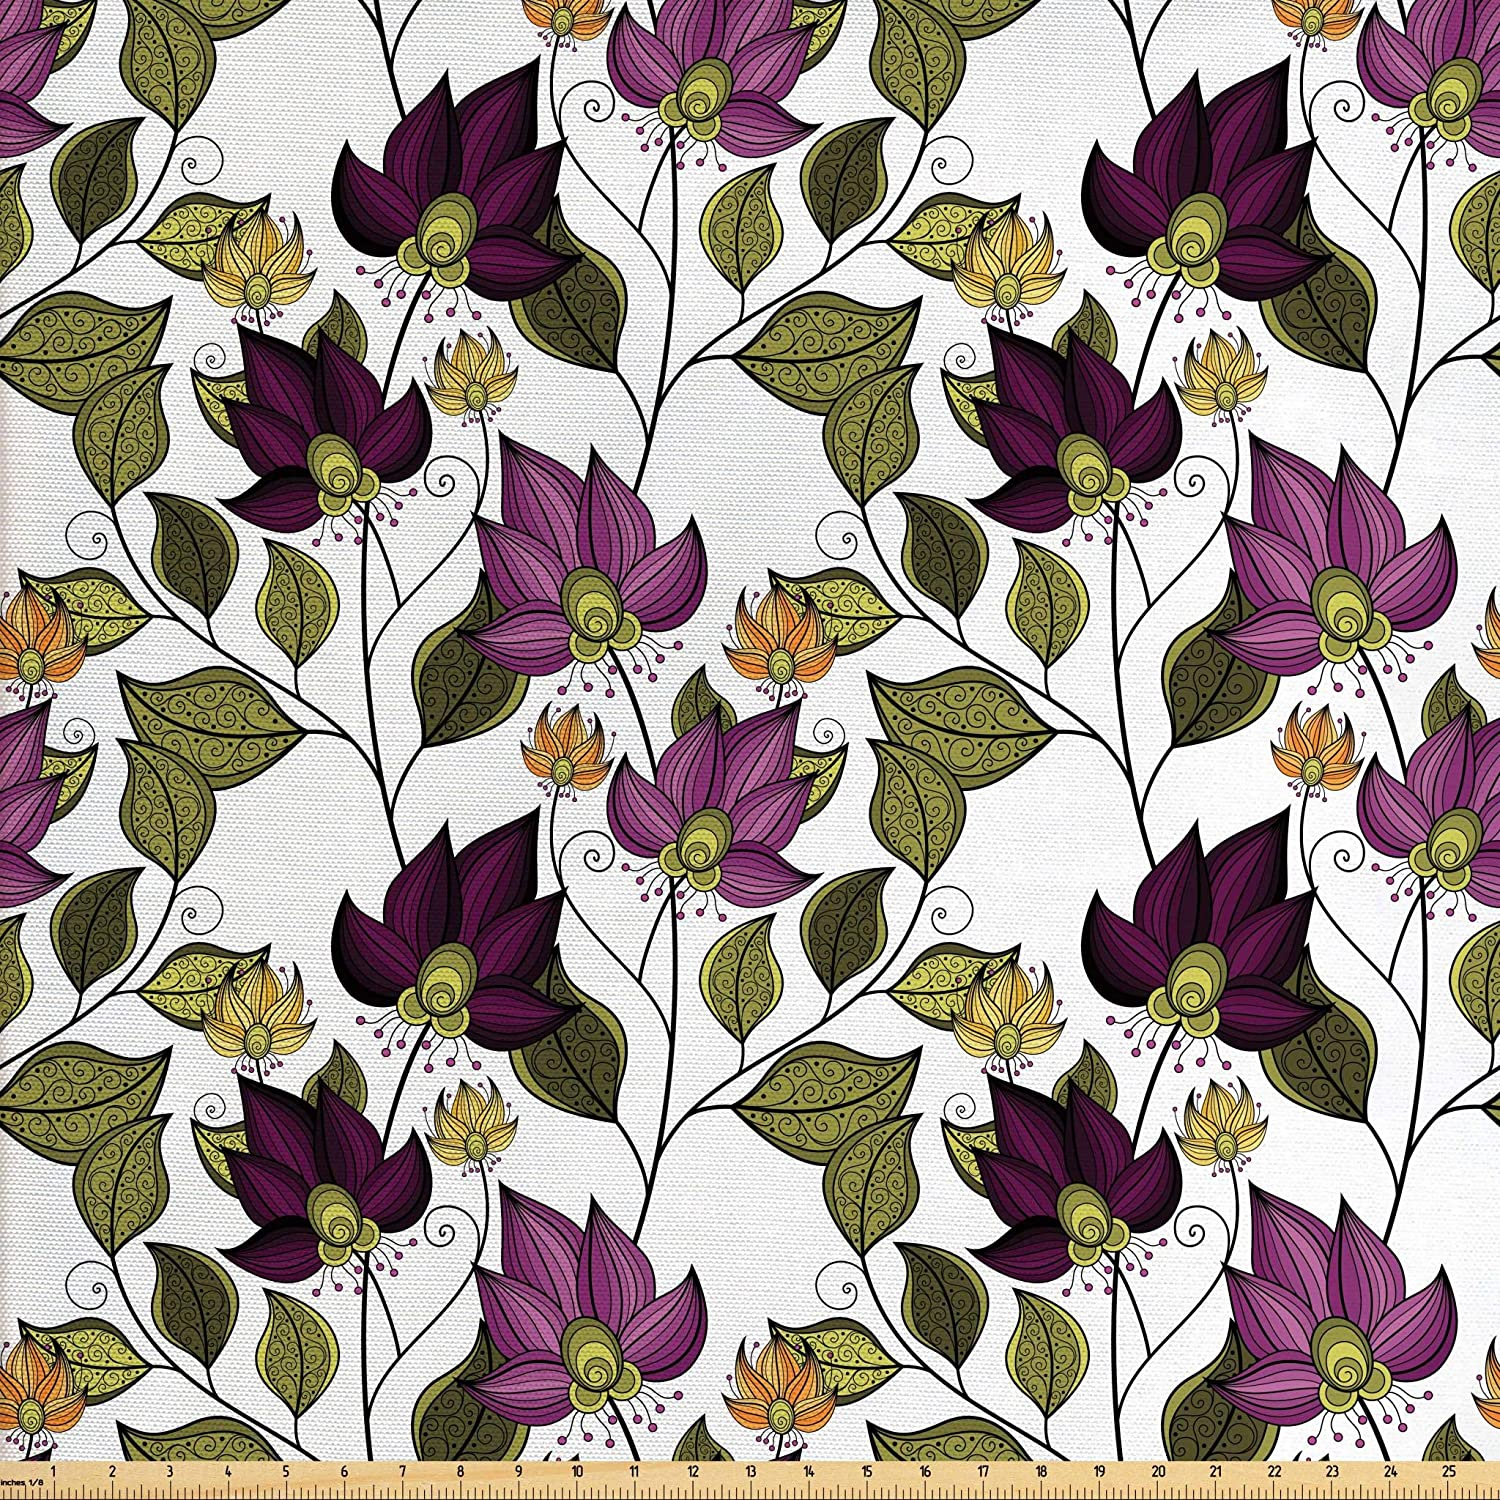 Lunarable Batik Fabric by The Yard, Vibrant Colored Floral Pattern with Petals and Ornate Leaves Bouquet Nature Theme, Decorative Fabric for Upholstery and Home Accents, 2 Yards, Purple Green